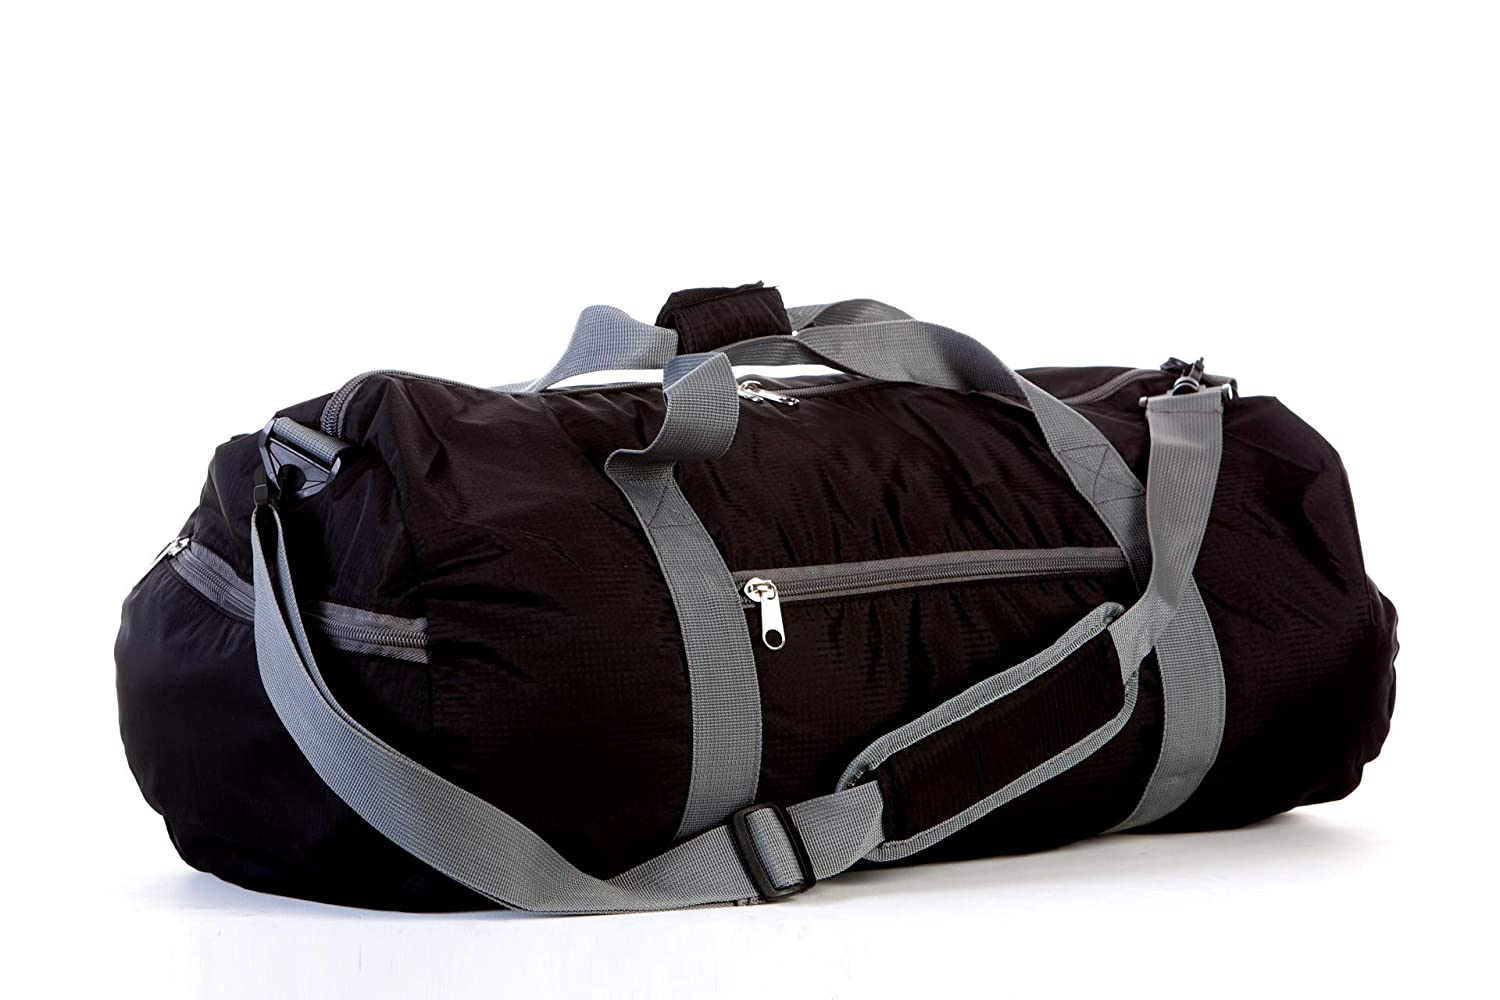 Global Huntress 23 Large Sports Duffel Gym Travel Bag Carry On Collapsible Sports Gym Bag